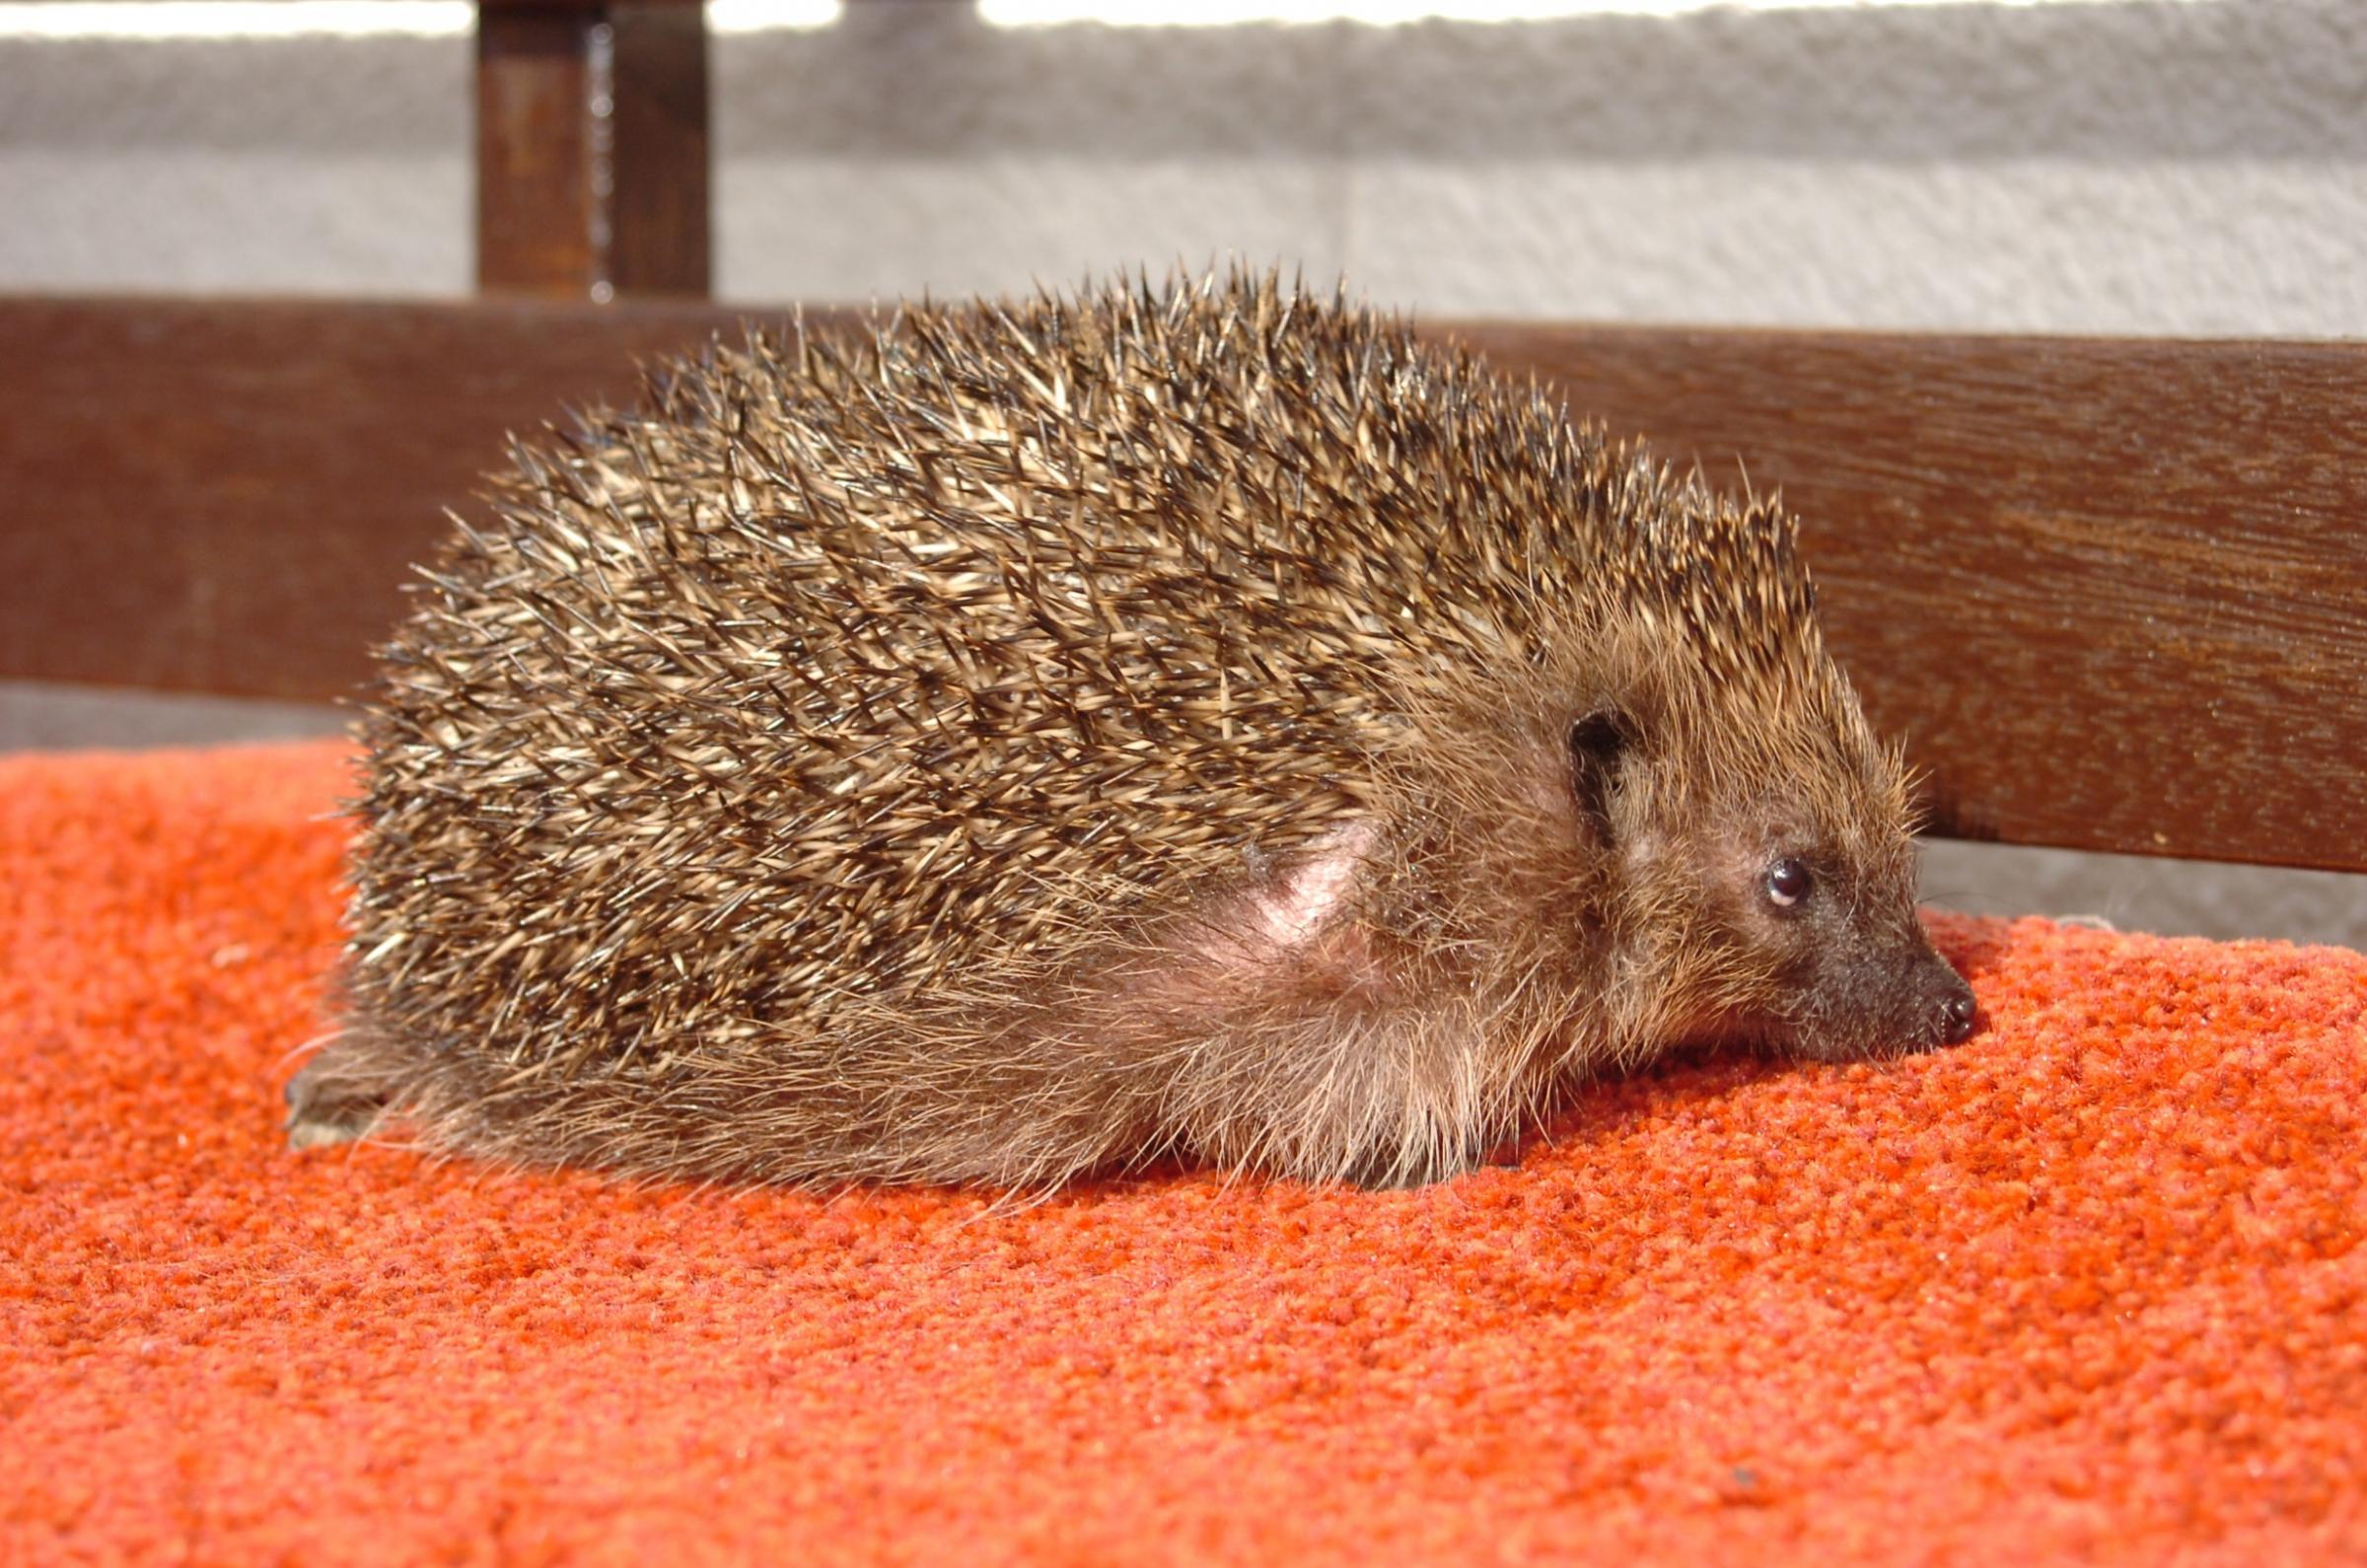 Tillington woman cares for prickly guests